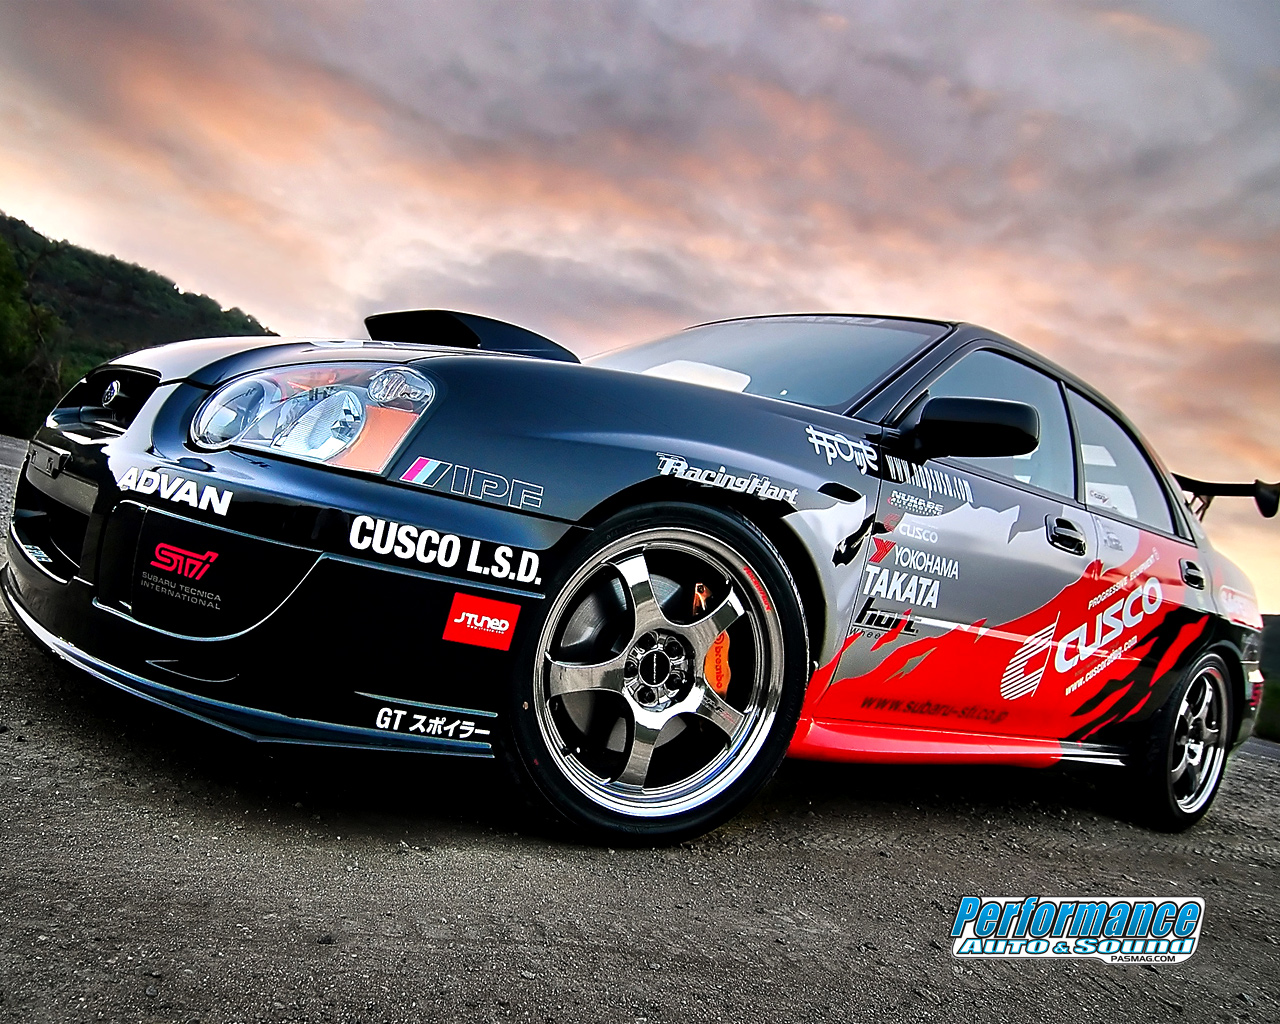 Voitures tuning page 6 - Image de voiture tuning ...